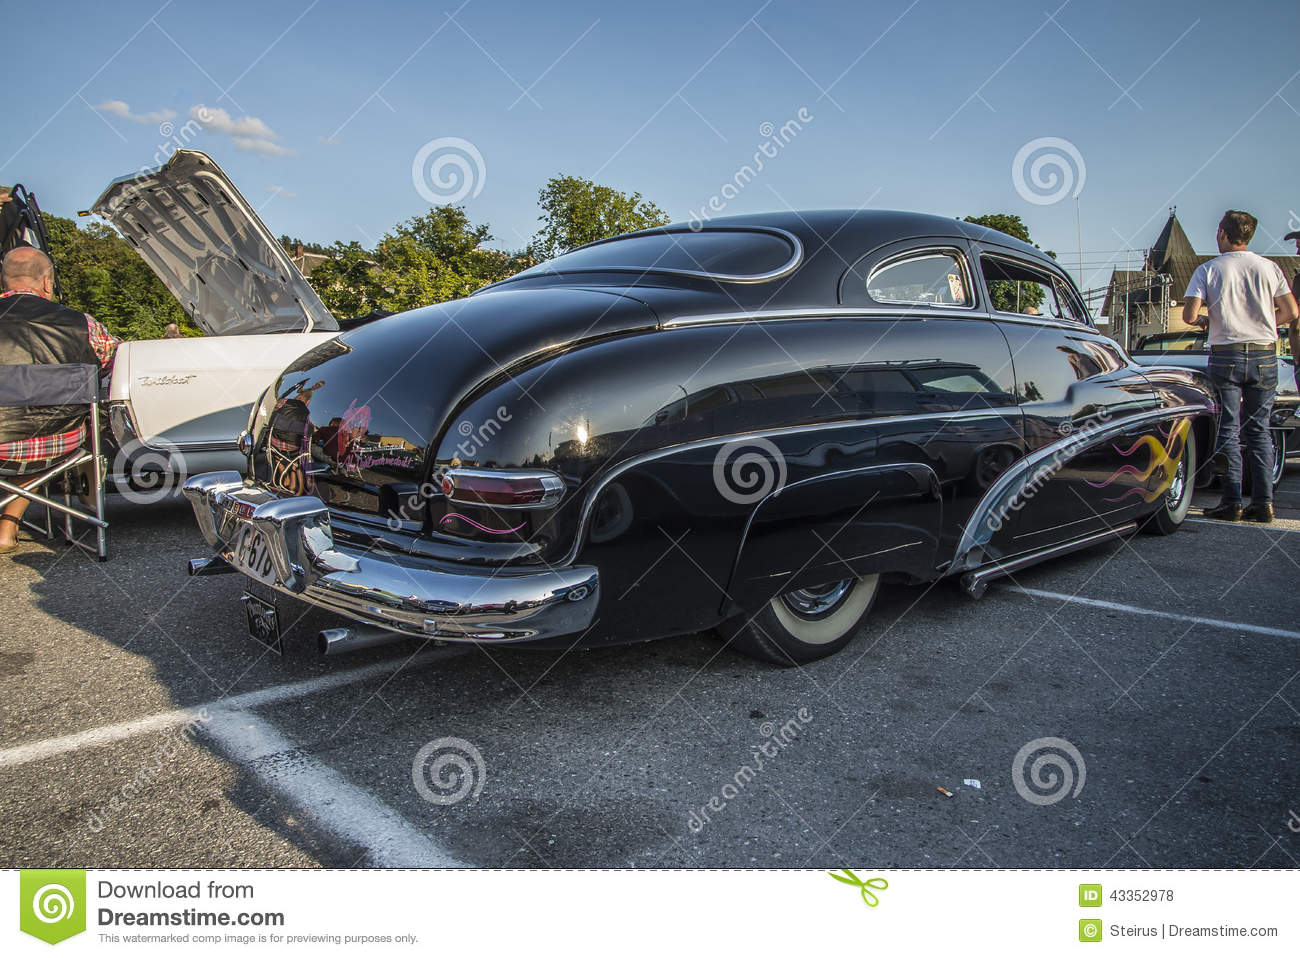 1950 Mercury Custom editorial stock photo. Image of luxury - 43352978